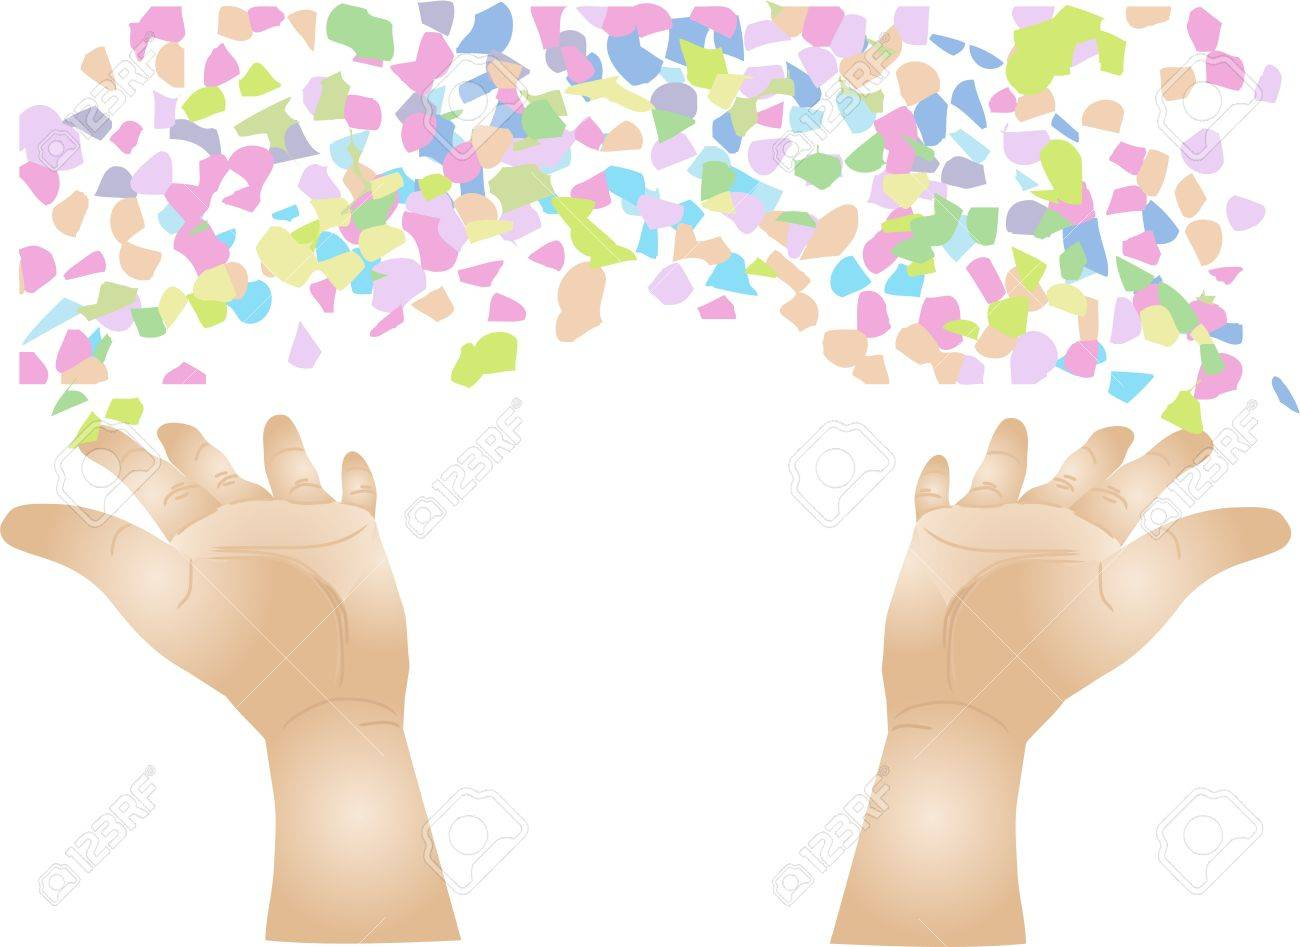 human hand throwing colored confetti  isolated on a white background Stock Vector - 14781827